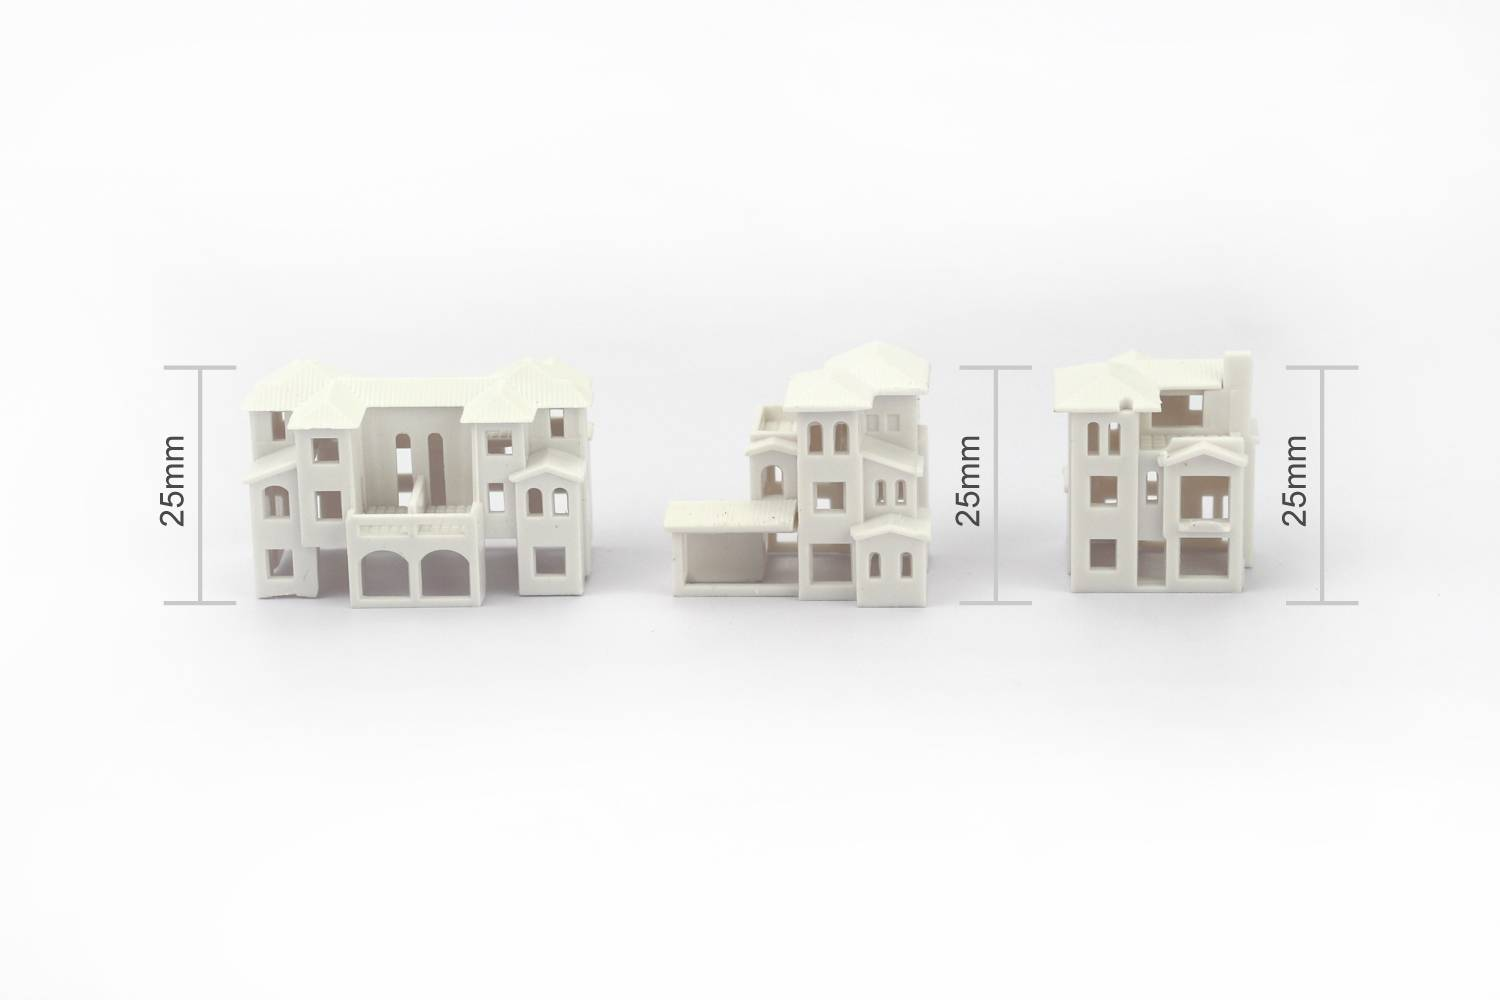 Architectural Scale Model Miniature of Building Mini House Villa